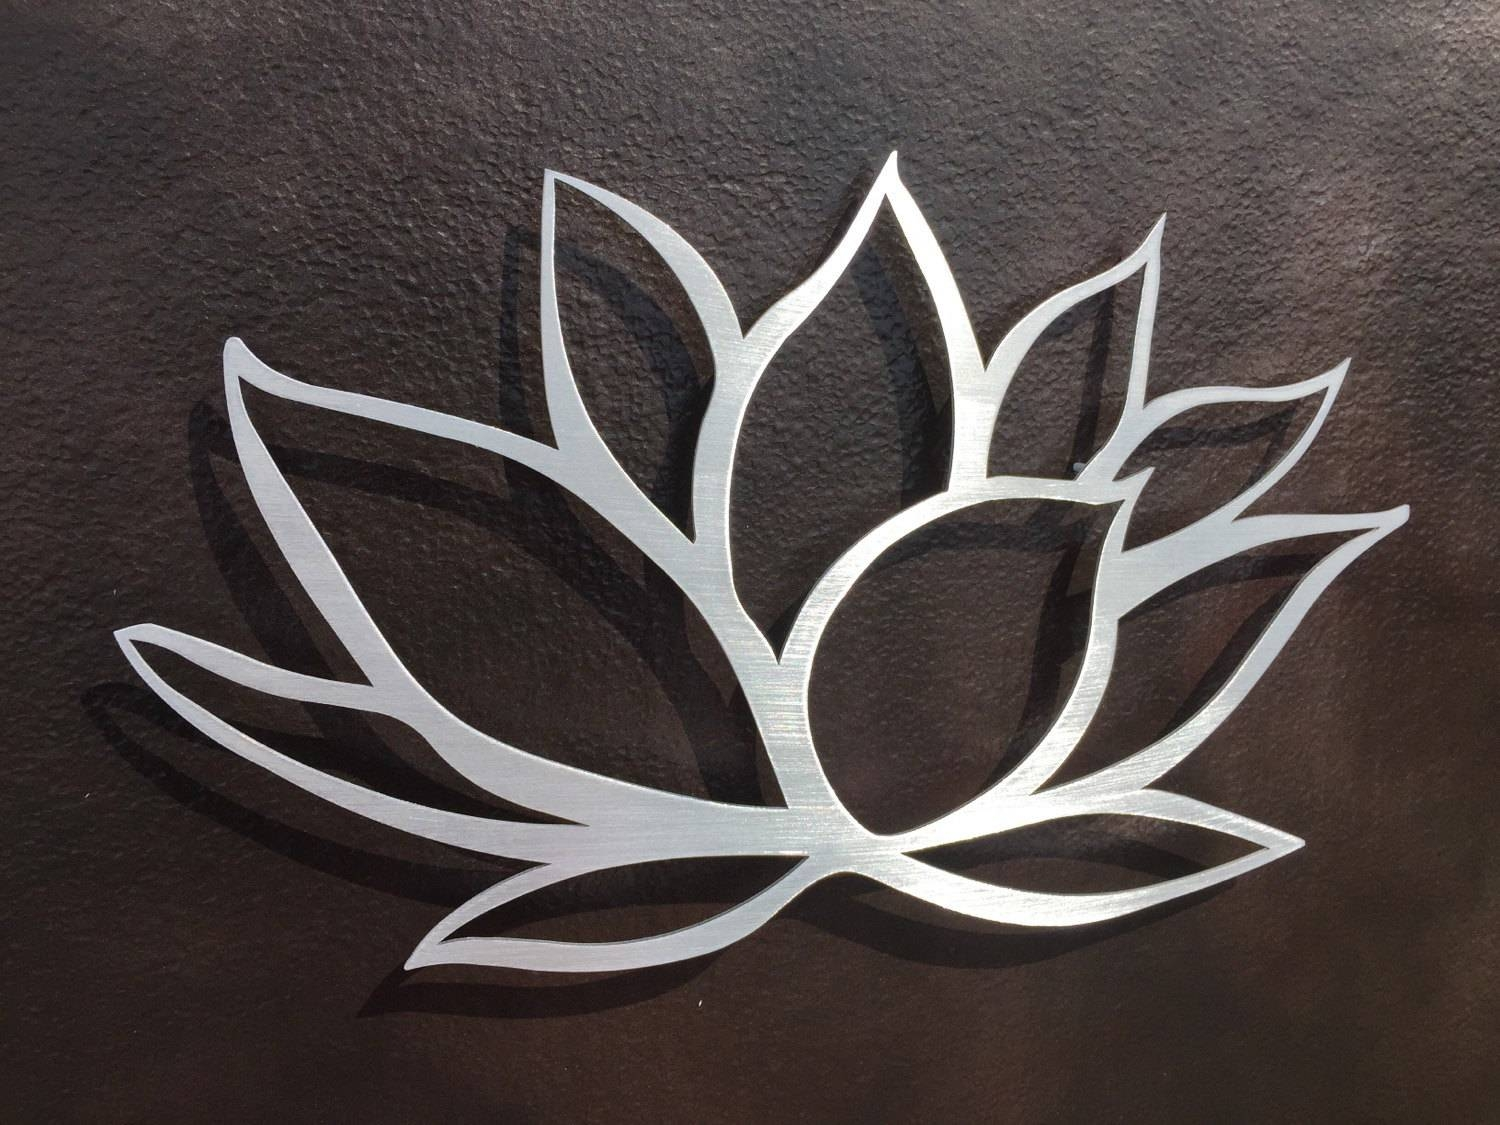 41 Silver Metal Wall Art Flowers, Home Metal Wall Art Wall Decor Regarding Most Recent Silver Metal Wall Art Flowers (View 10 of 20)